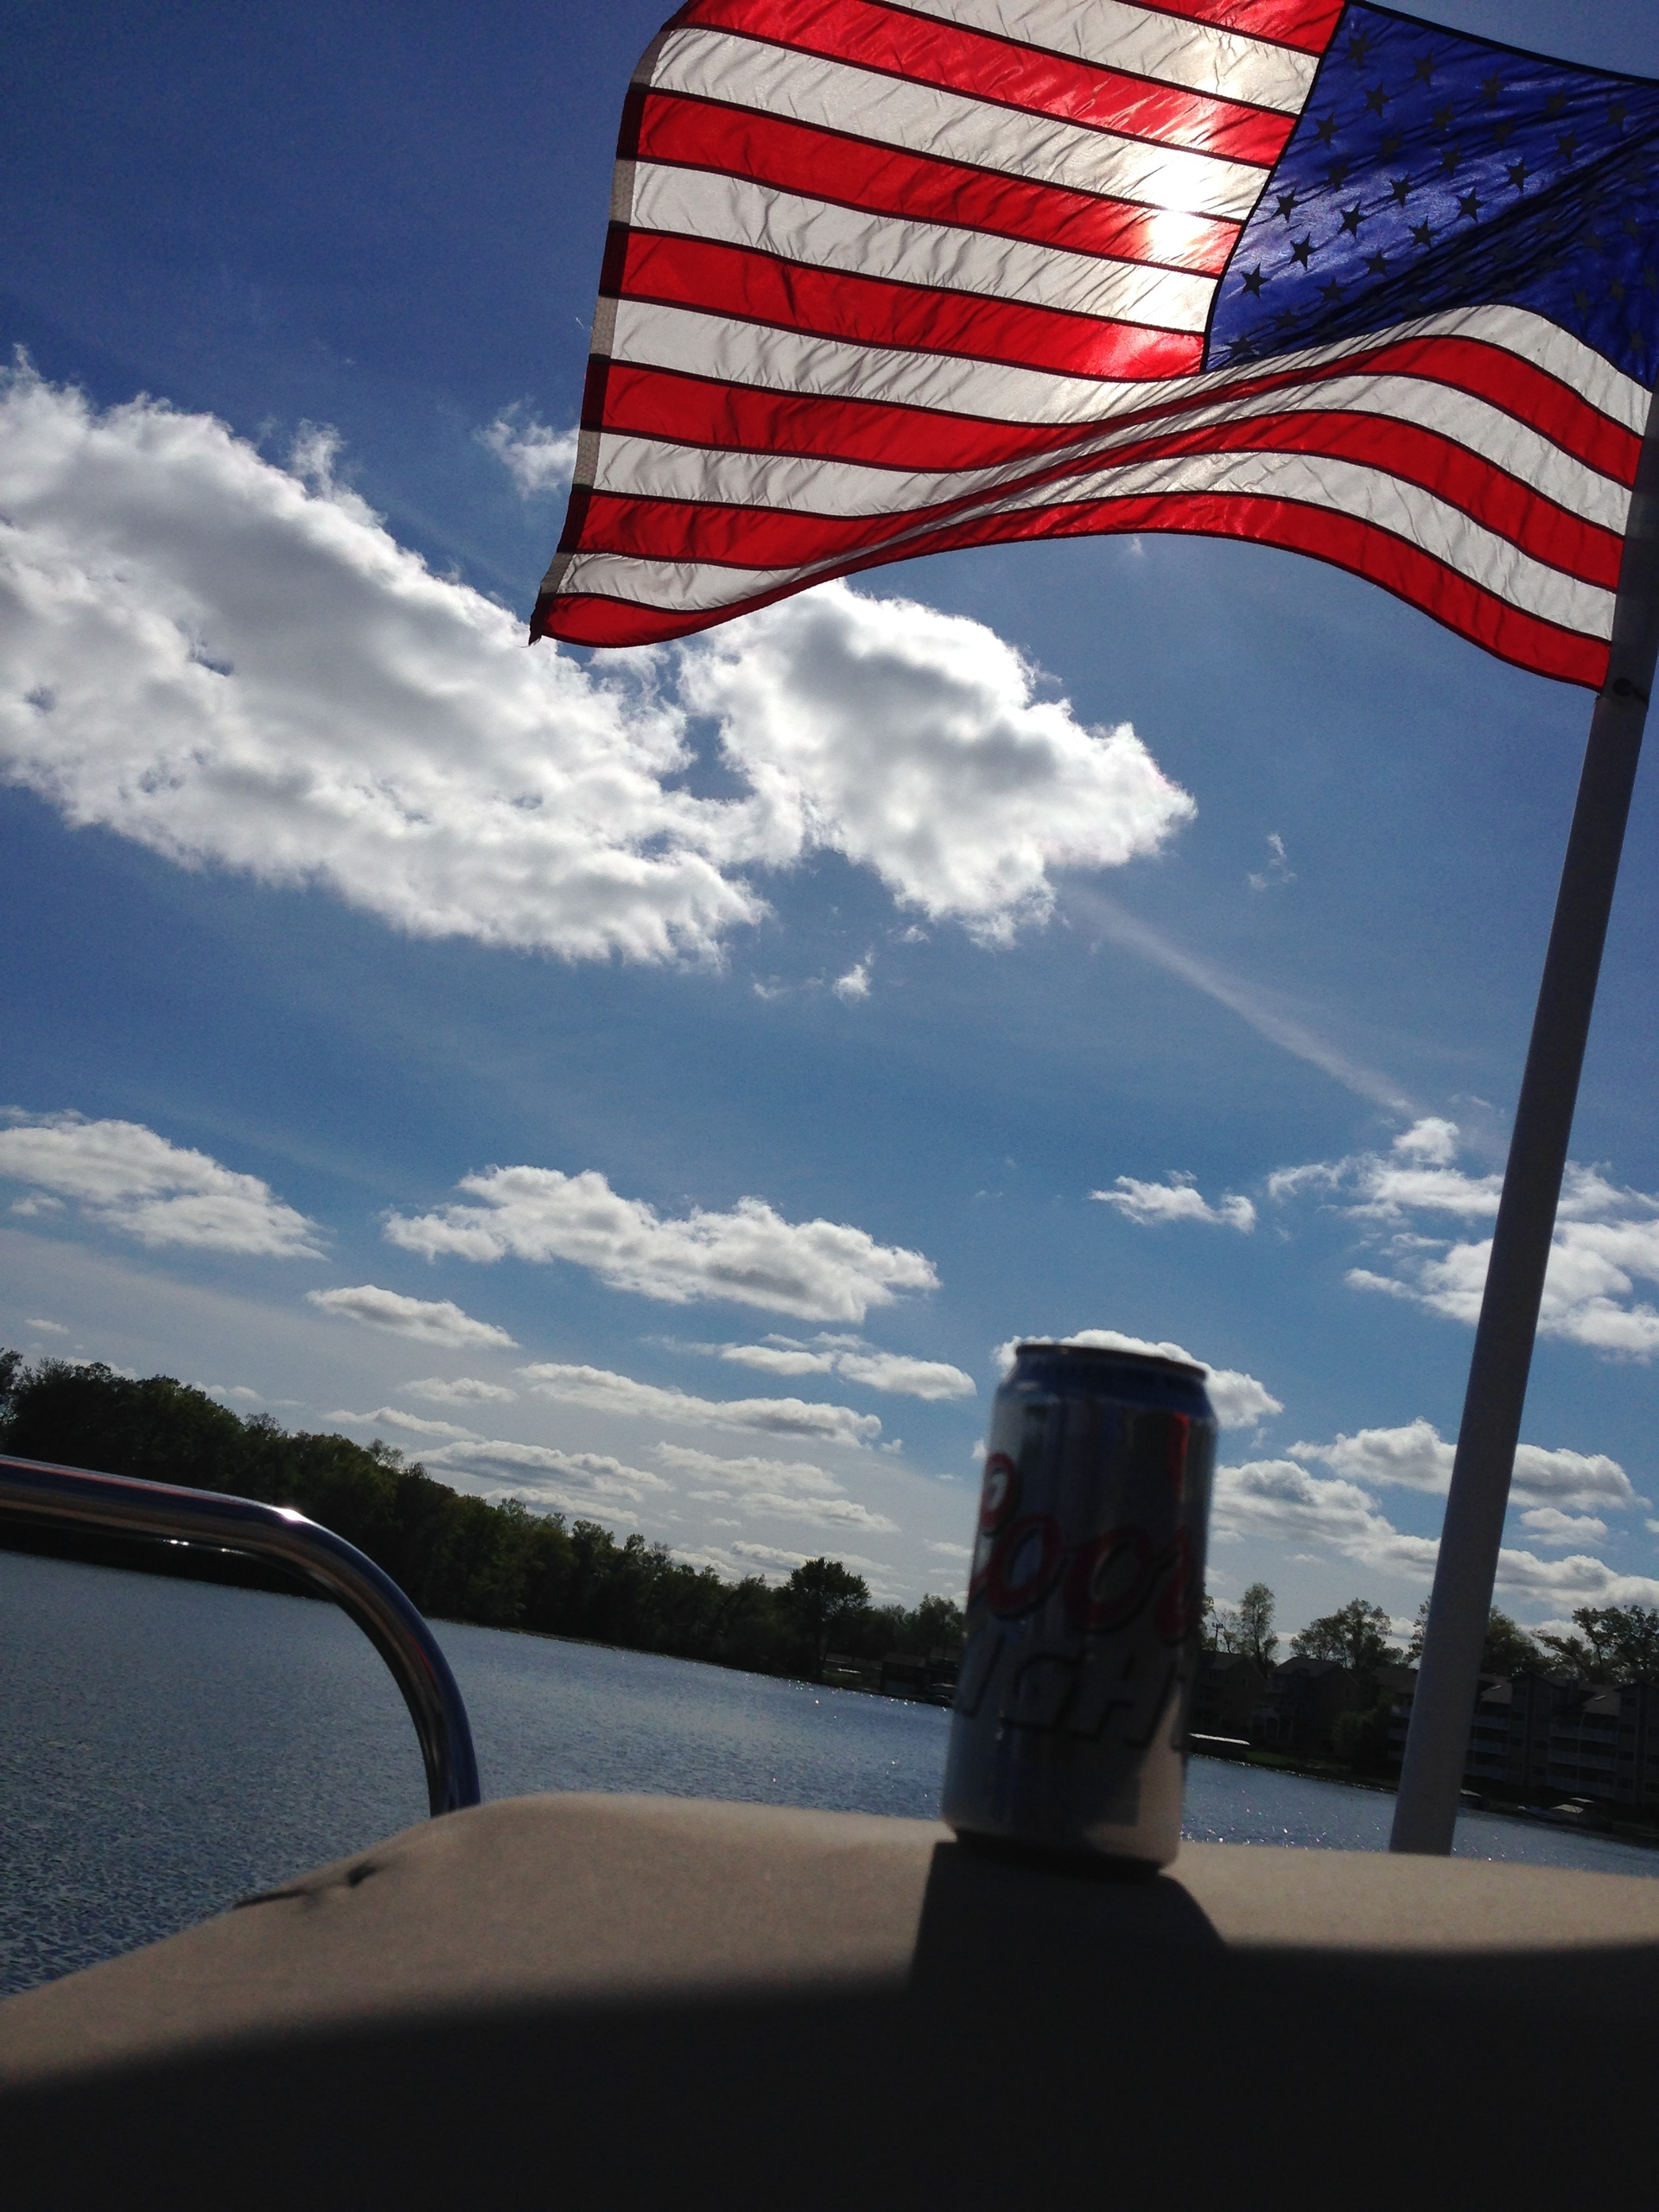 Old Glory. Summer fun on lake with drink and American flag